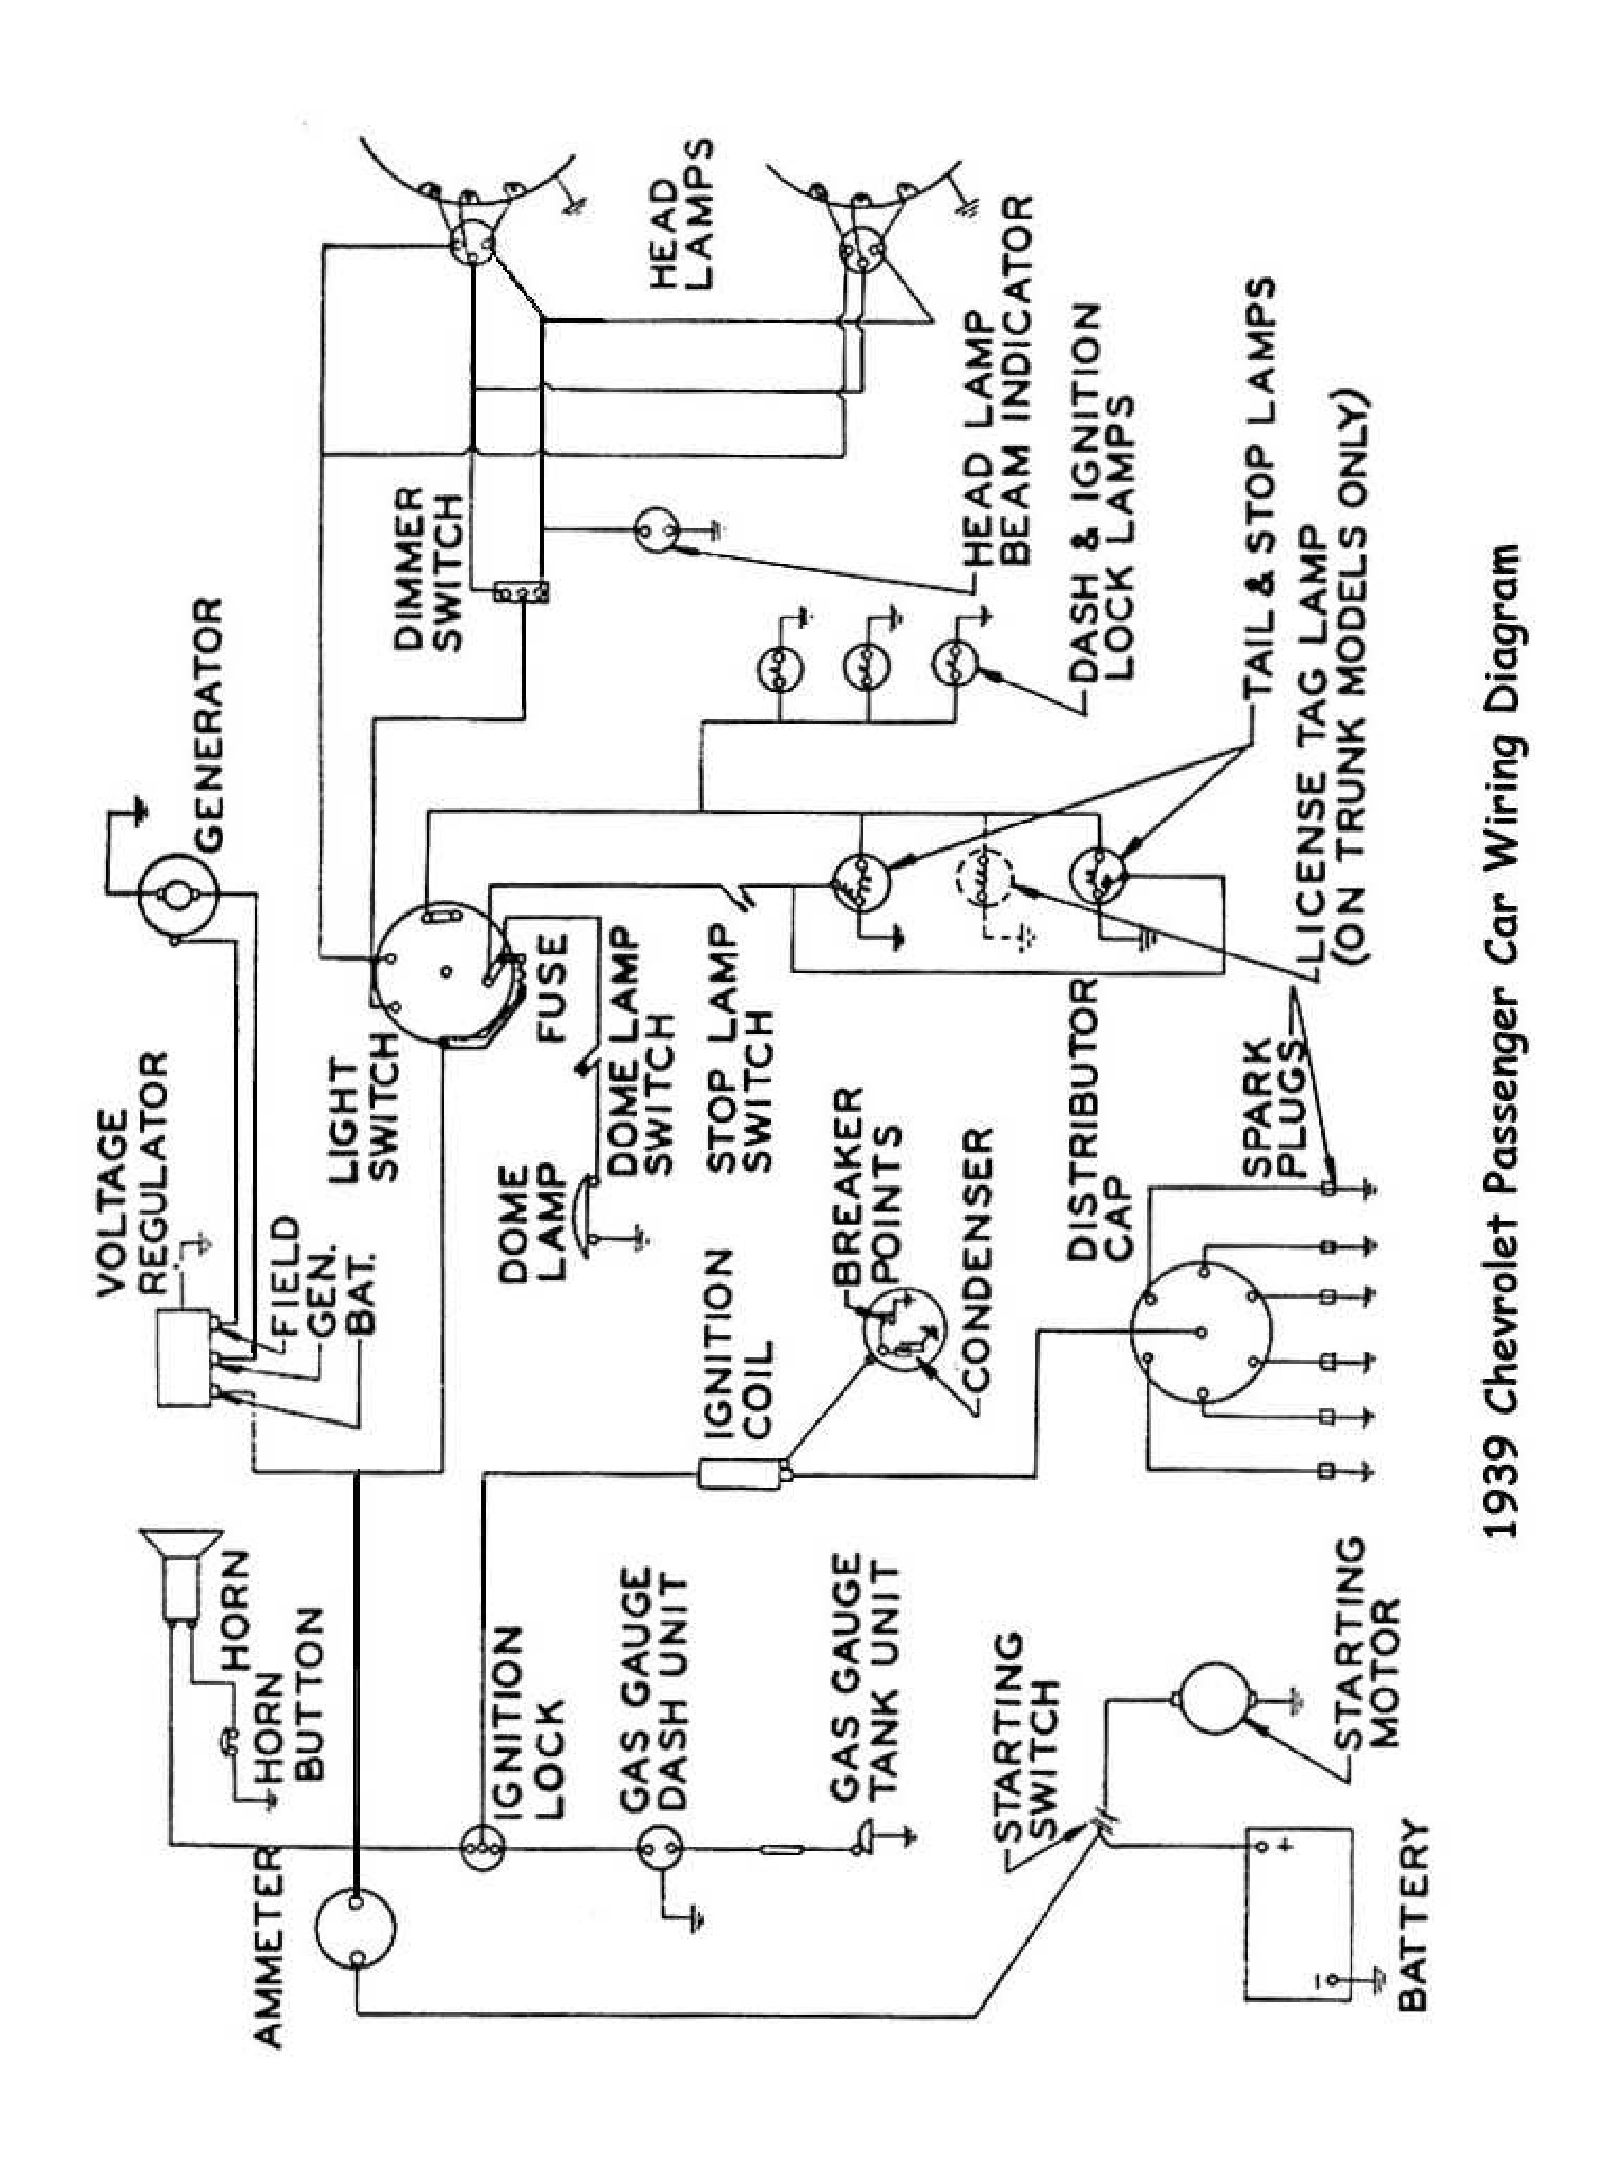 39car chevy wiring diagrams car wiring diagrams at panicattacktreatment.co